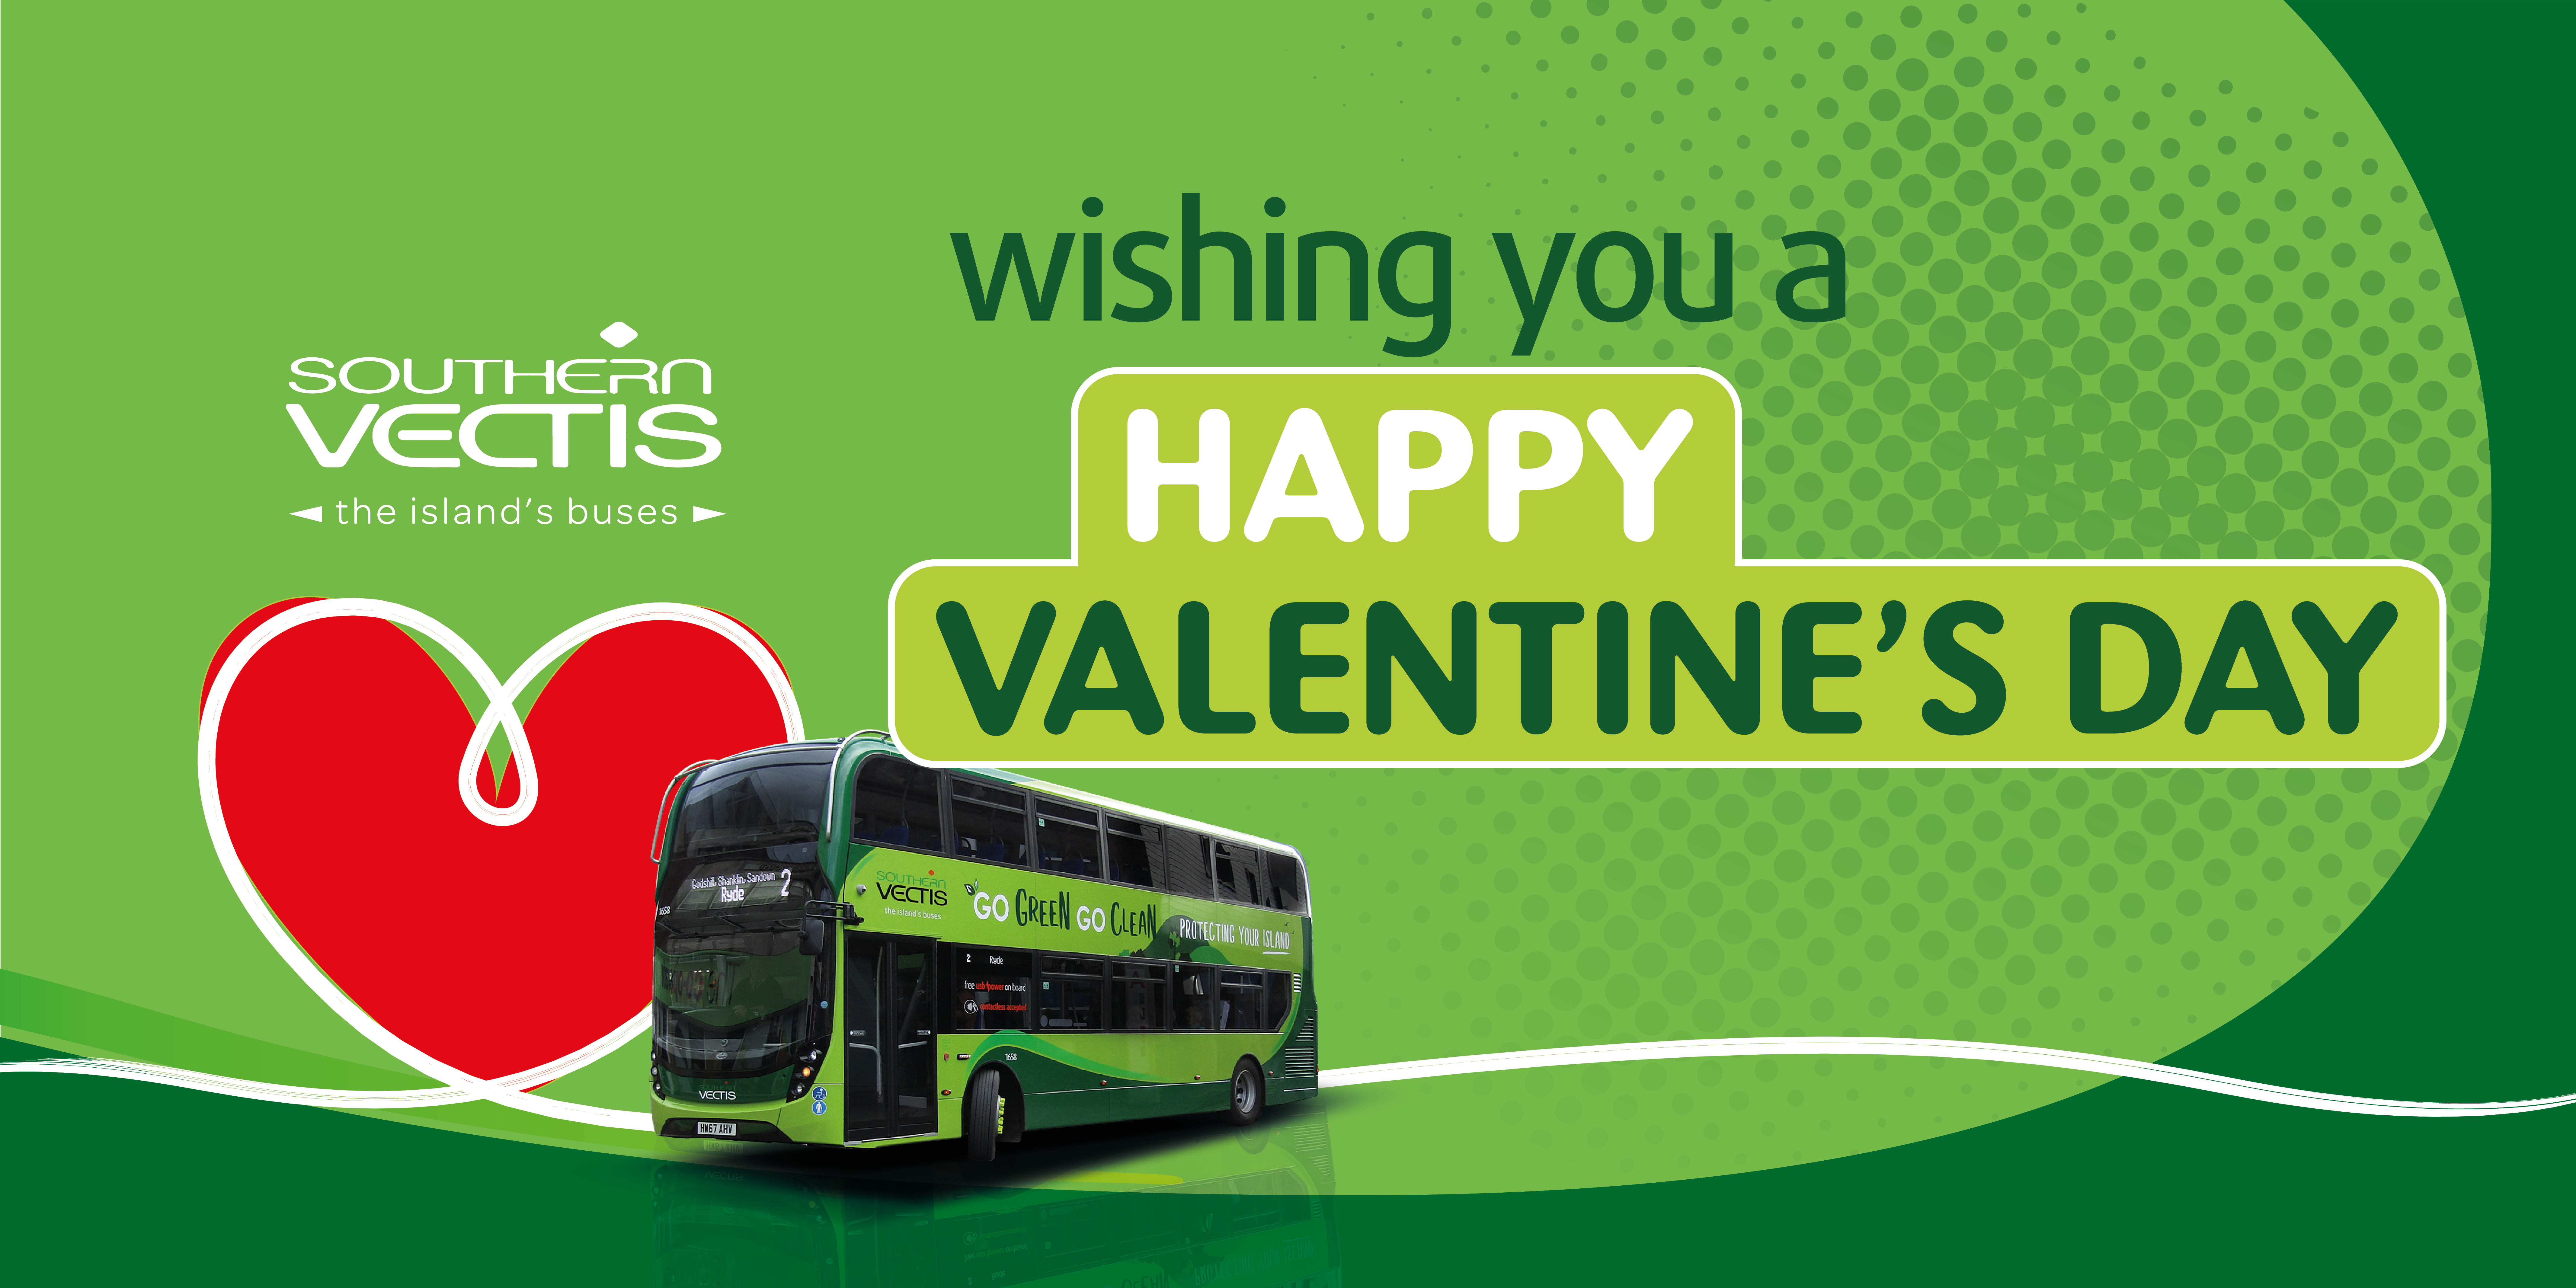 Wishing you a happy valentines day!